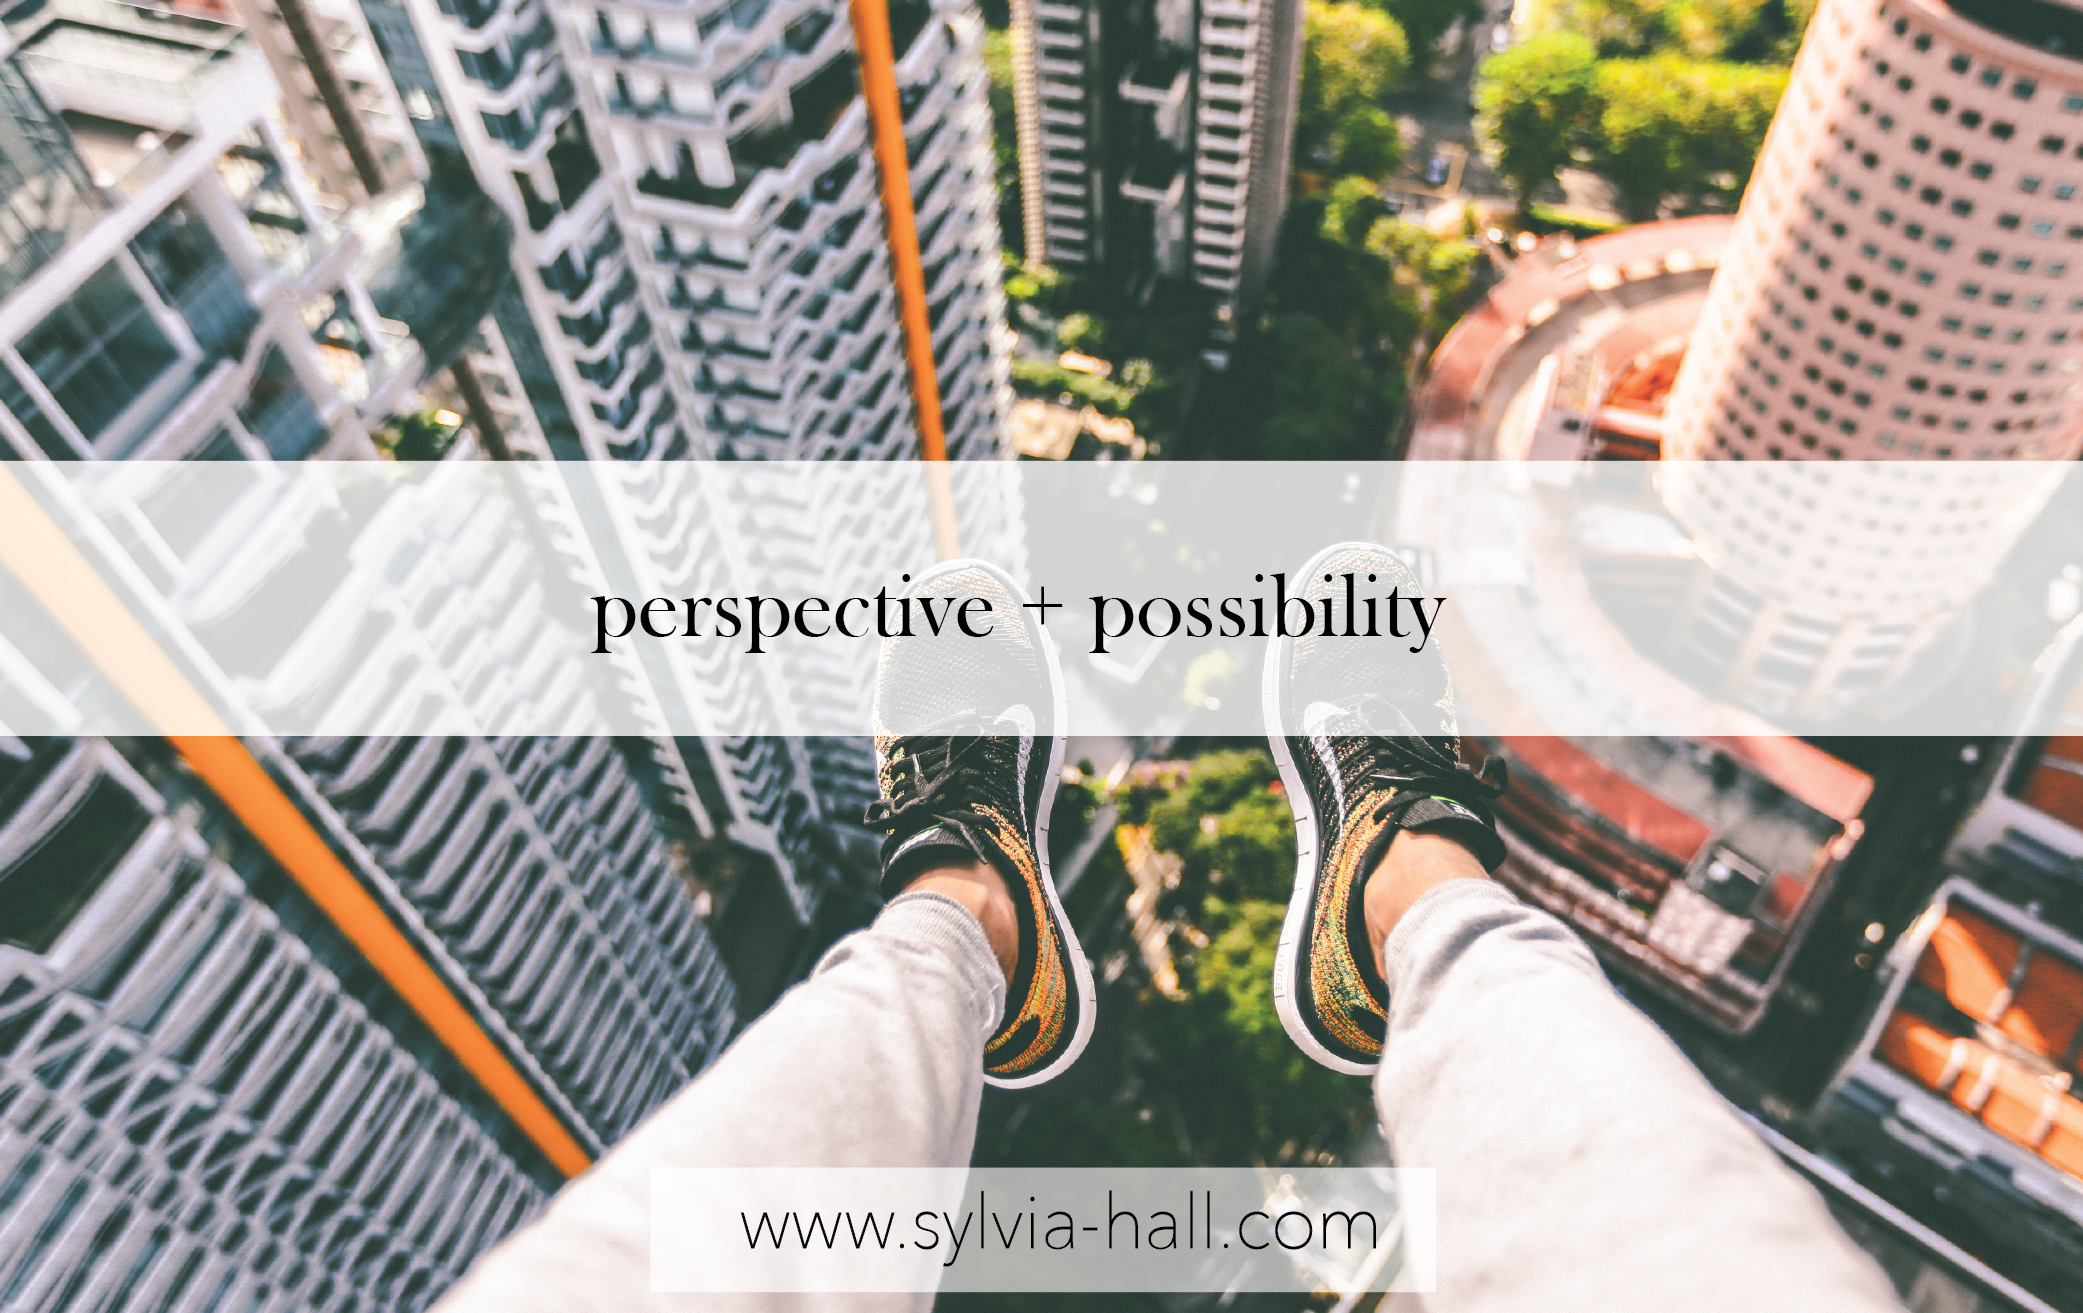 perspectiveandpossibility-01